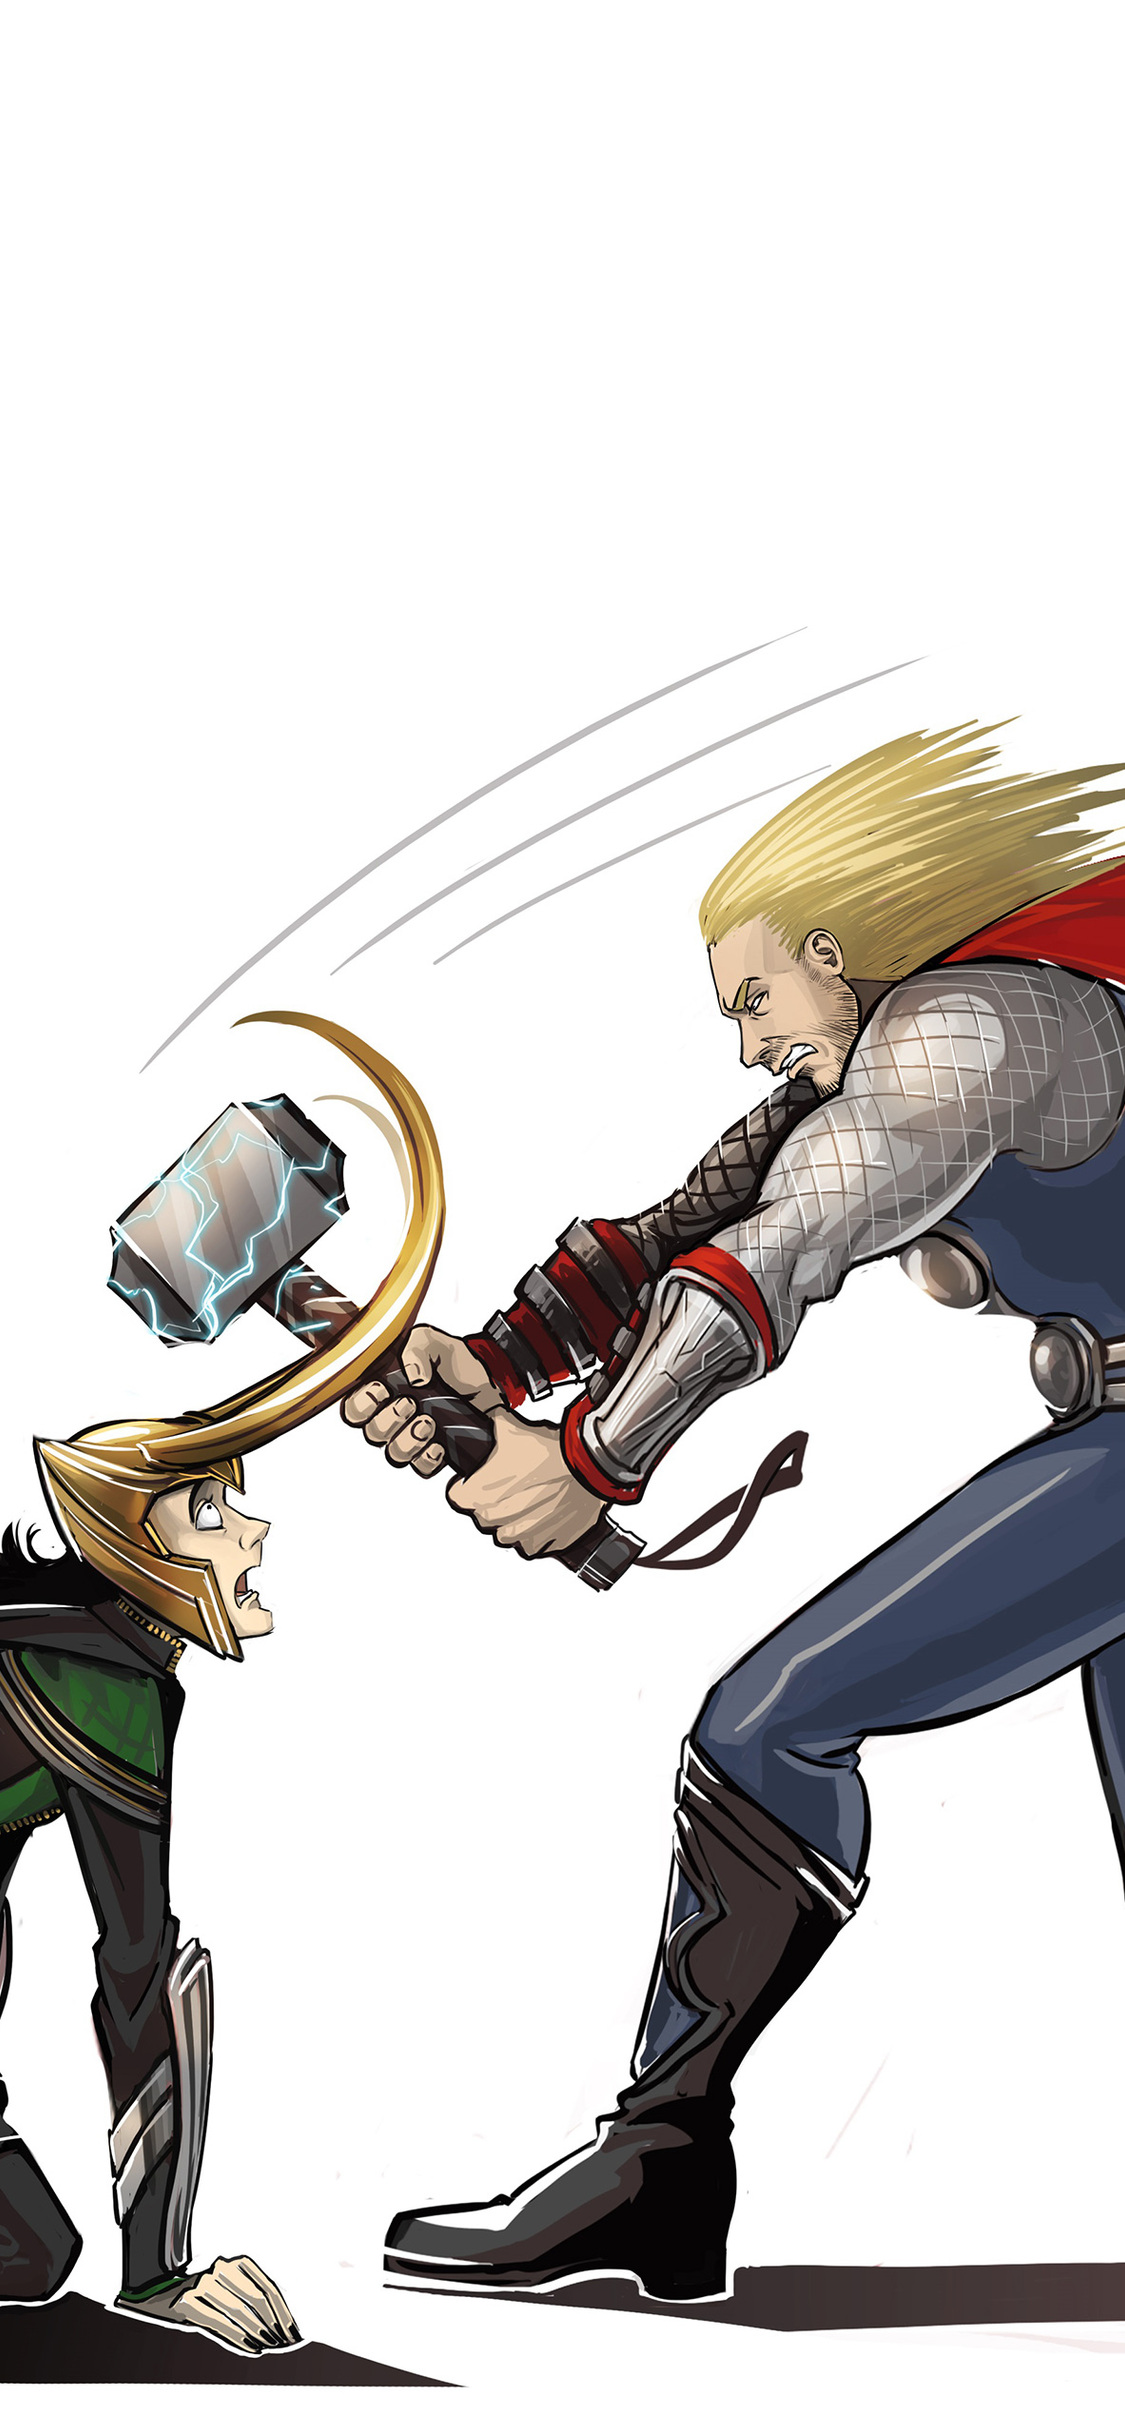 1125x2436 Thor Vs Loki Iphone Xs Iphone 10 Iphone X Hd 4k Wallpapers